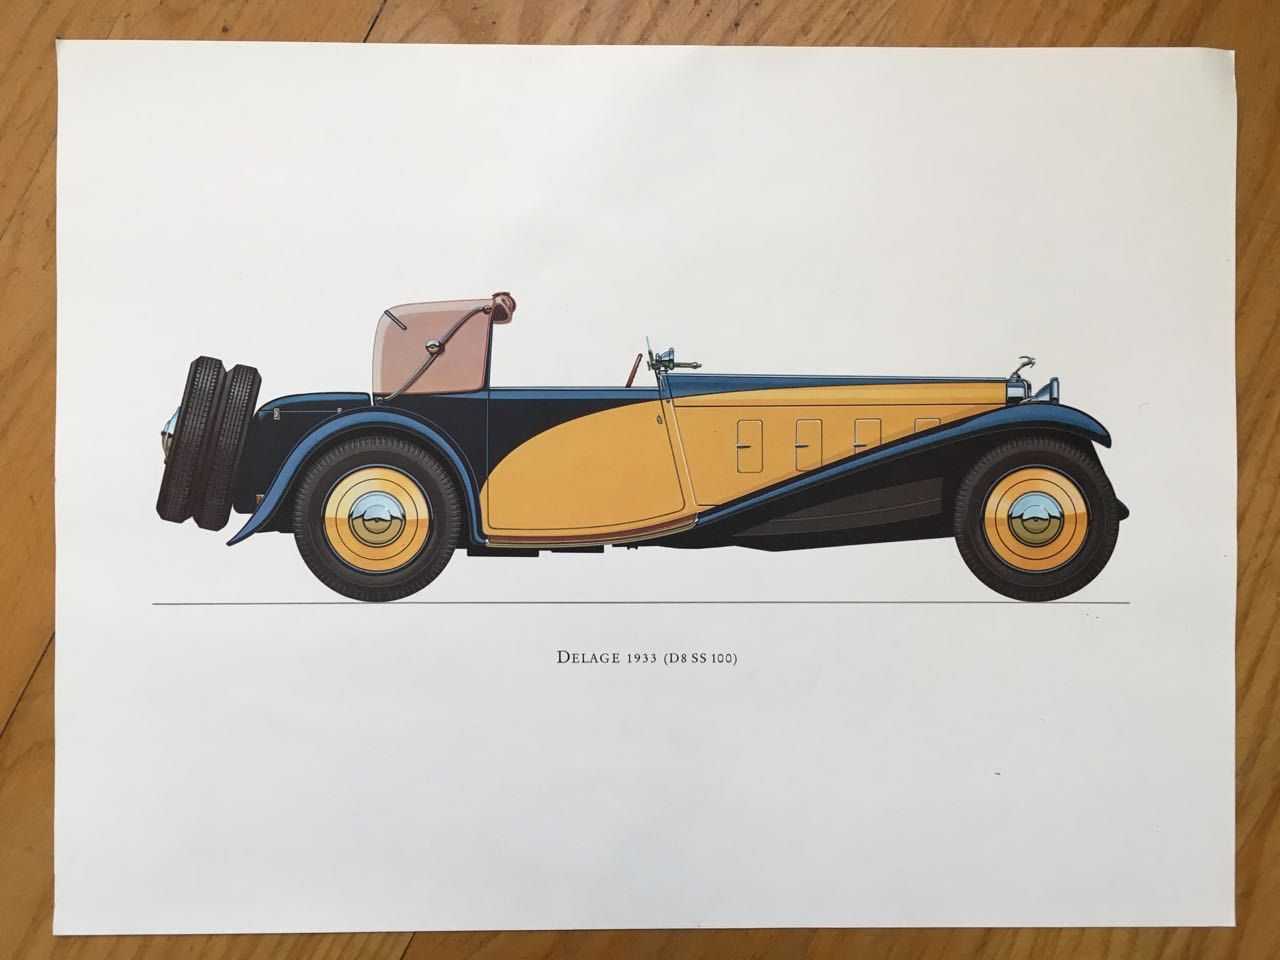 DELAGE 1933 - antique classic car print -  original vintage lithograph printed in the 1960's by antiqueprintstore on Etsy